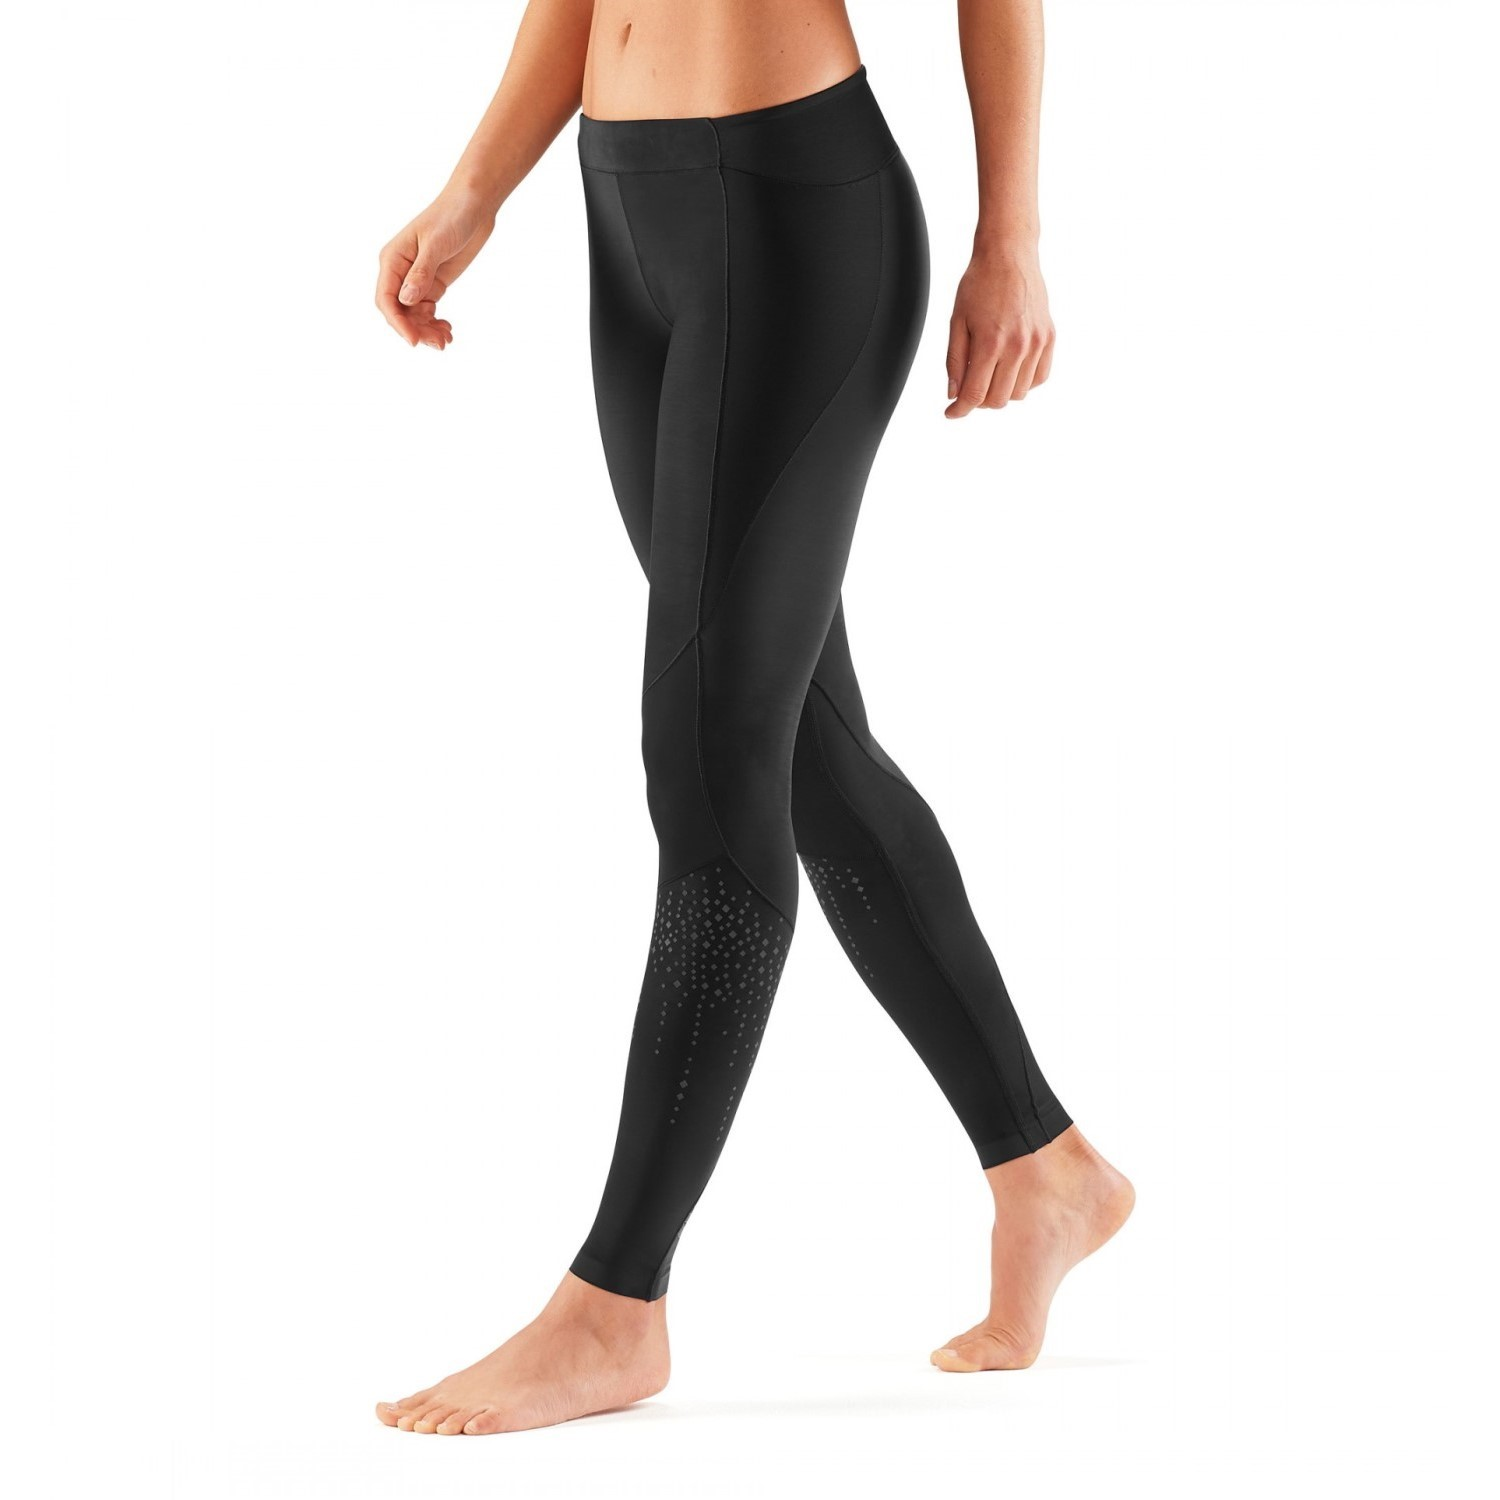 ac417bb9b2 Skins A400 Starlight Womens Compression Long Tights - Nexus | Sportitude